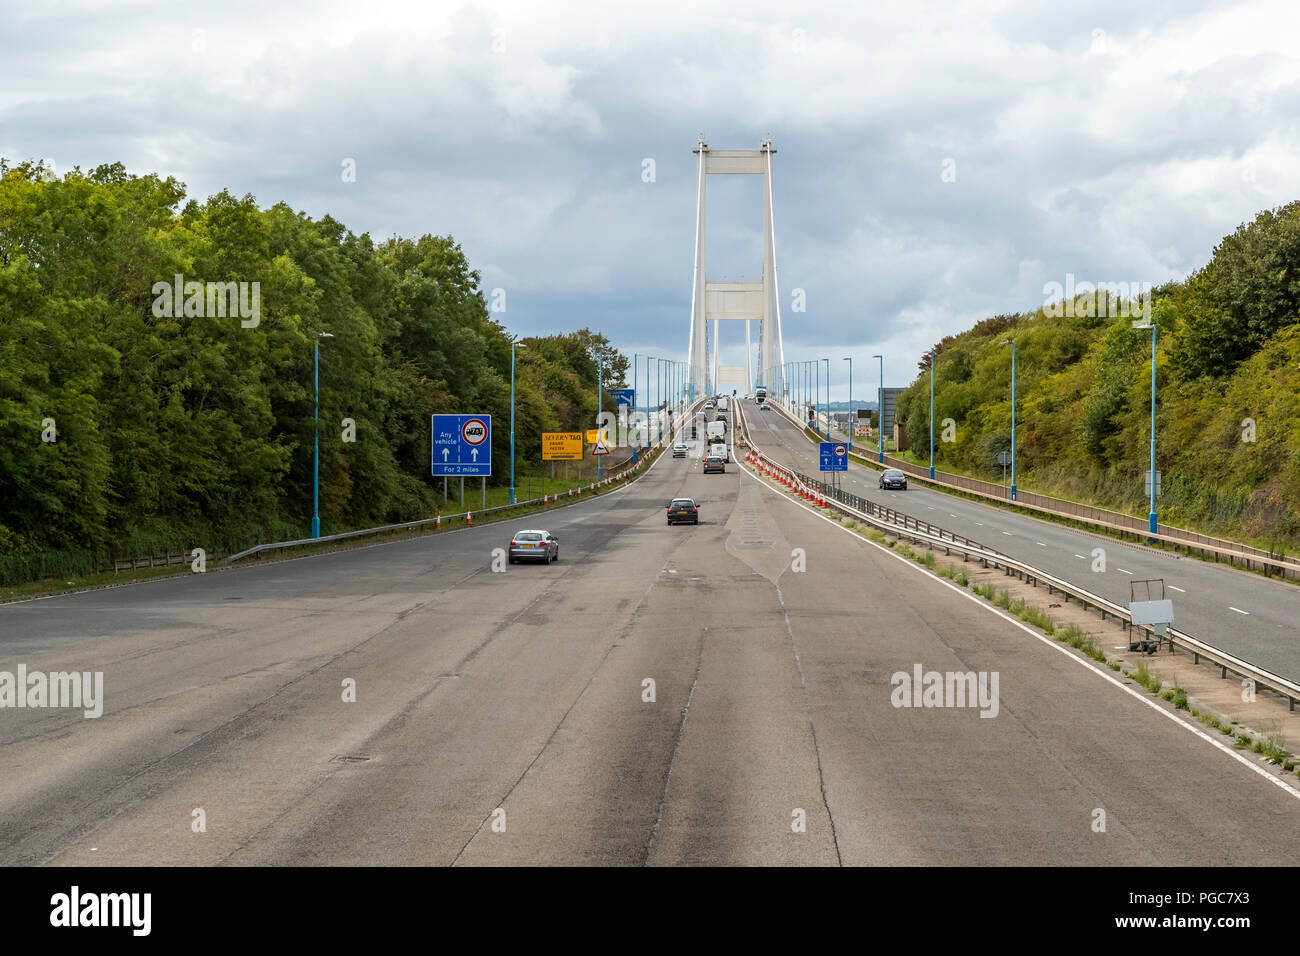 Toll plaza on the M48 Severn Crossing England/Wales border. UK Stock Photo